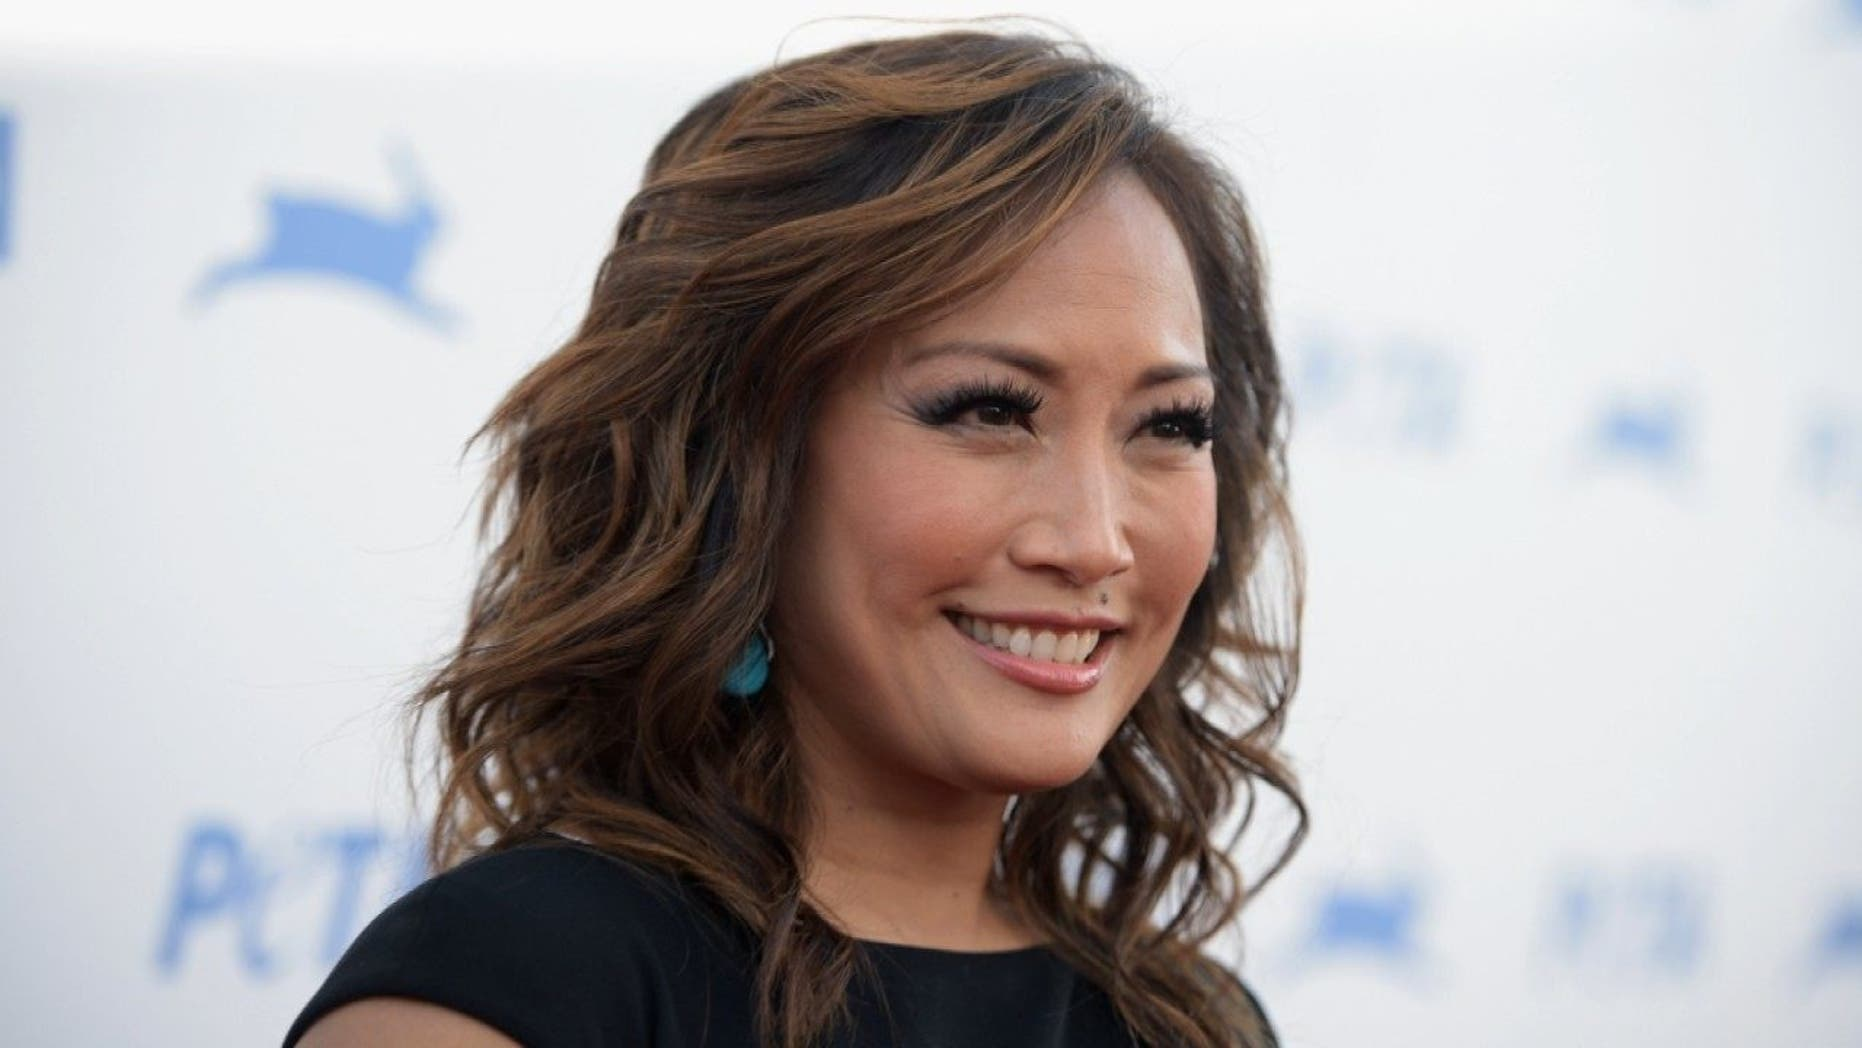 Dancing With the Stars' judge Carrie Ann Inaba to replace